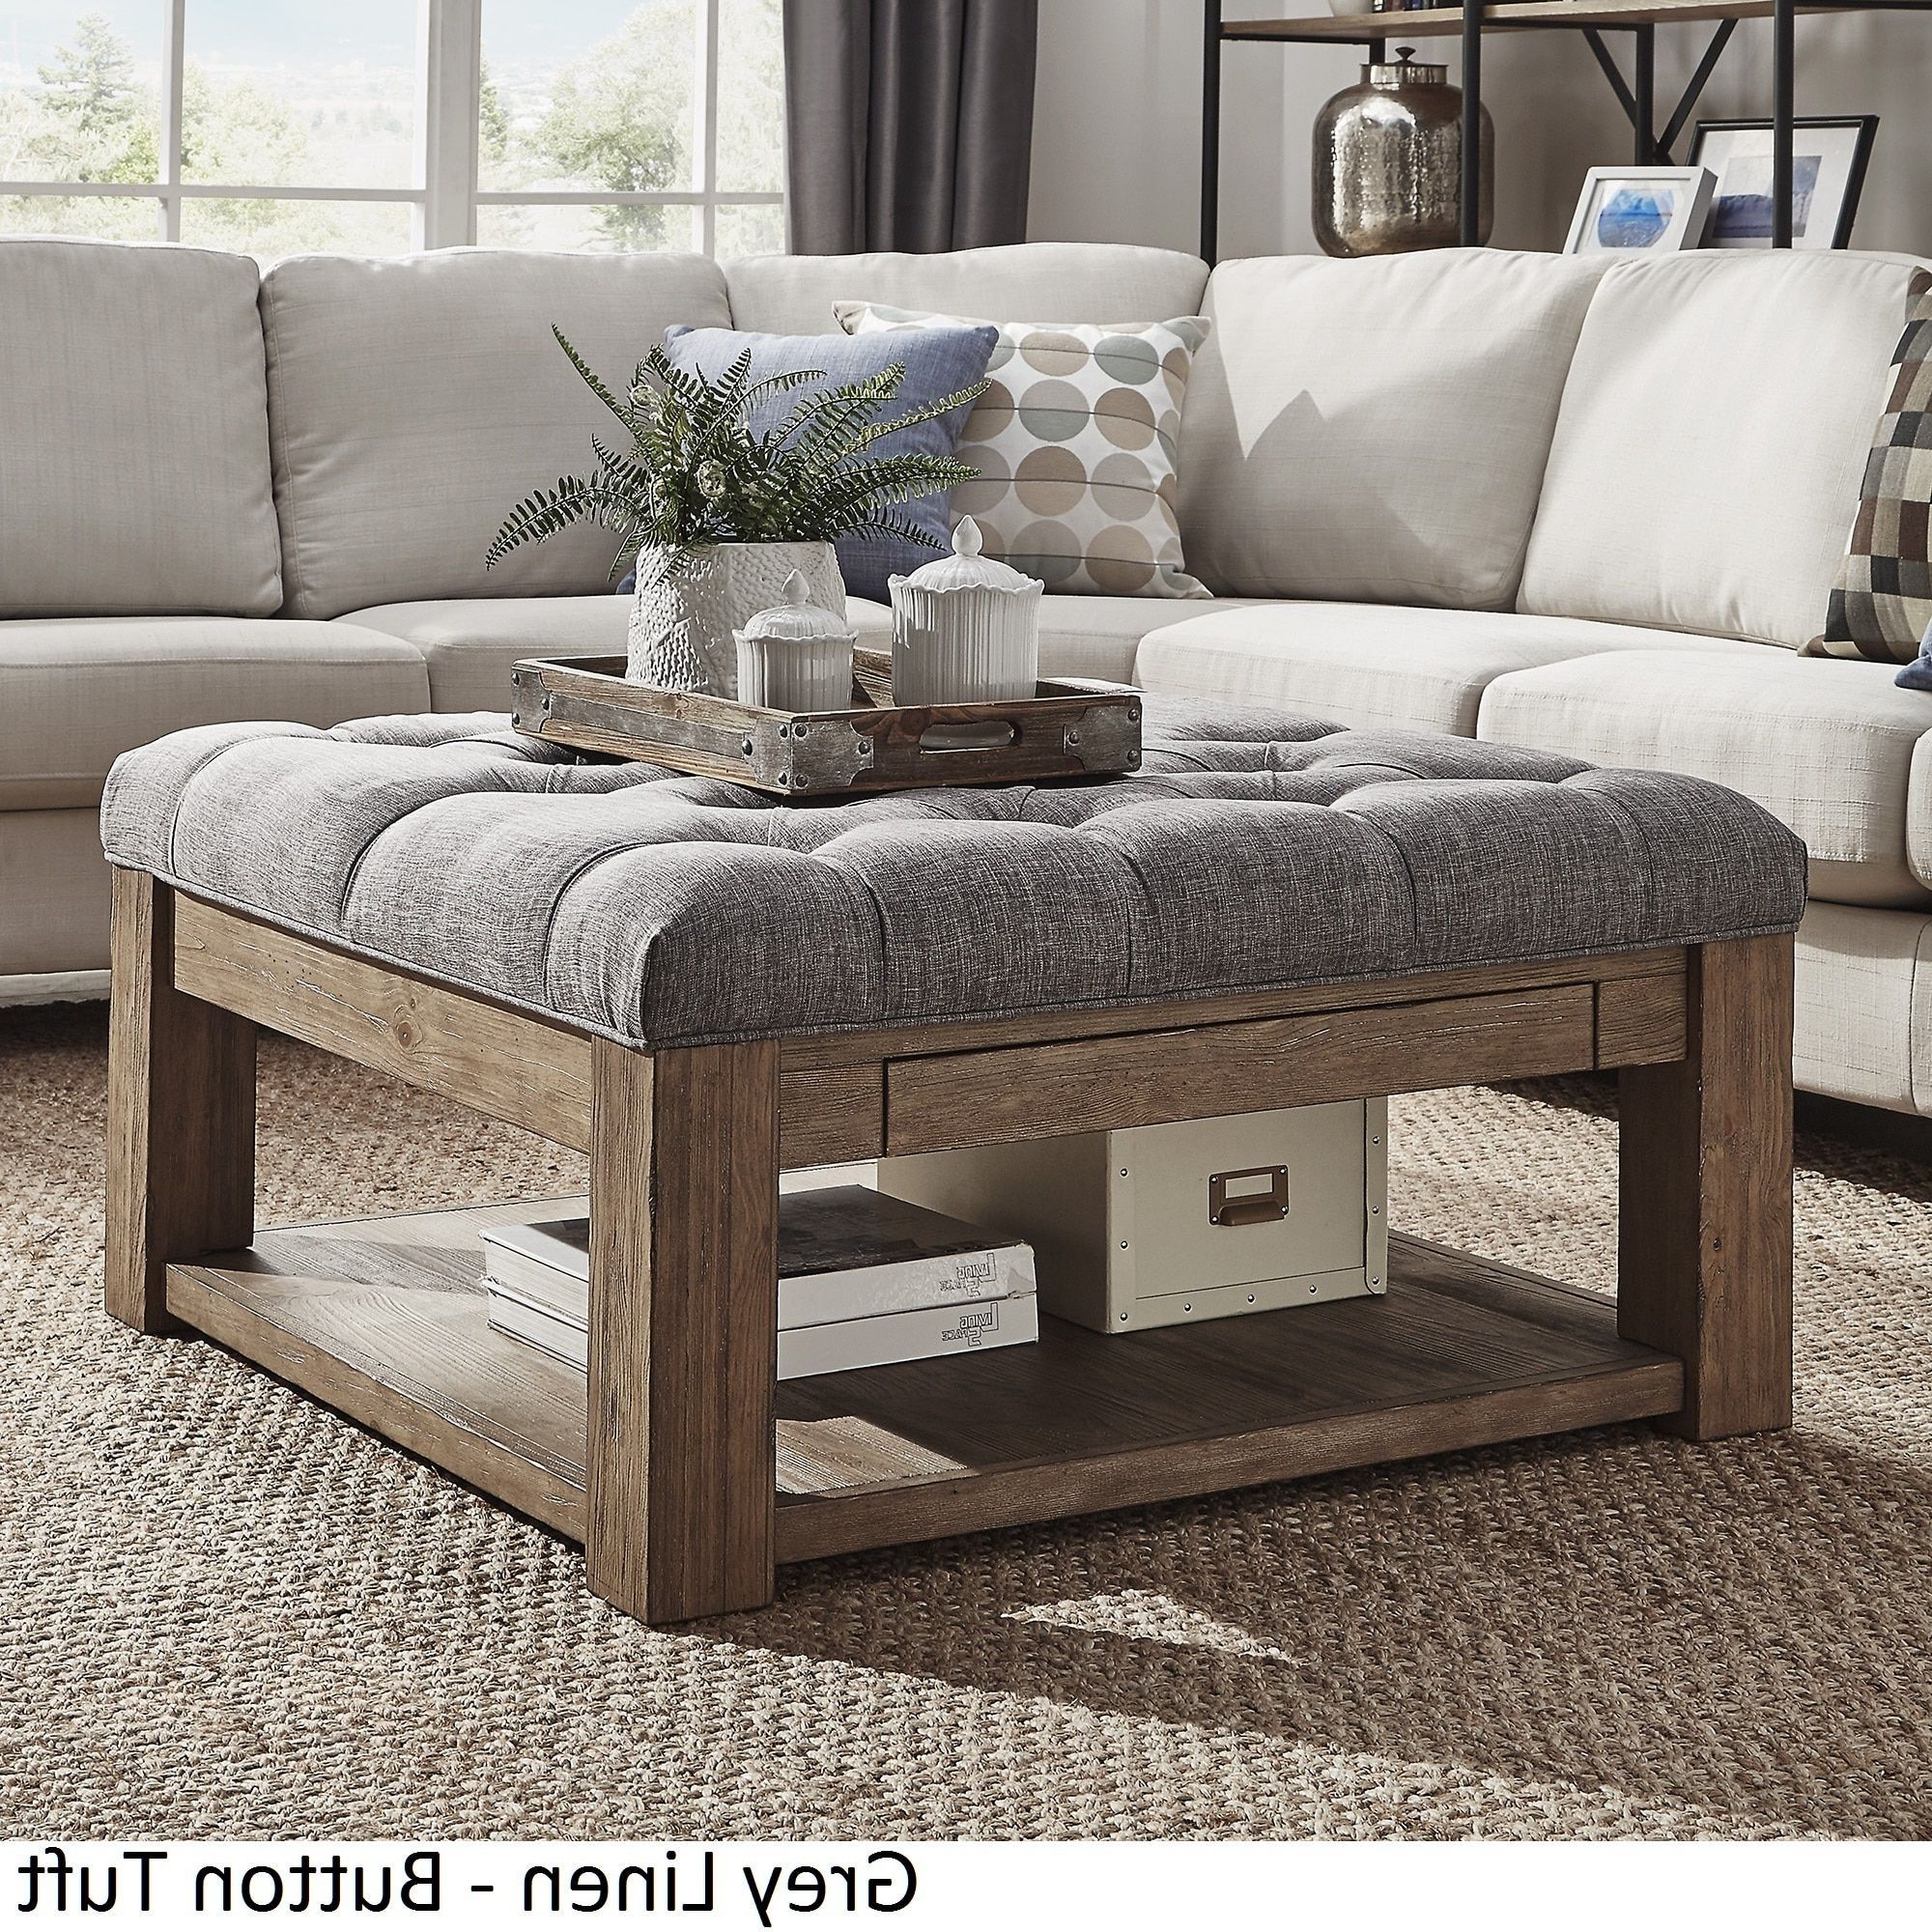 Lennon Pine Square Storage Ottoman Coffee Tableinspire Q In Well Known Lennon Pine Square Storage Ottoman Coffee Tables (View 10 of 20)